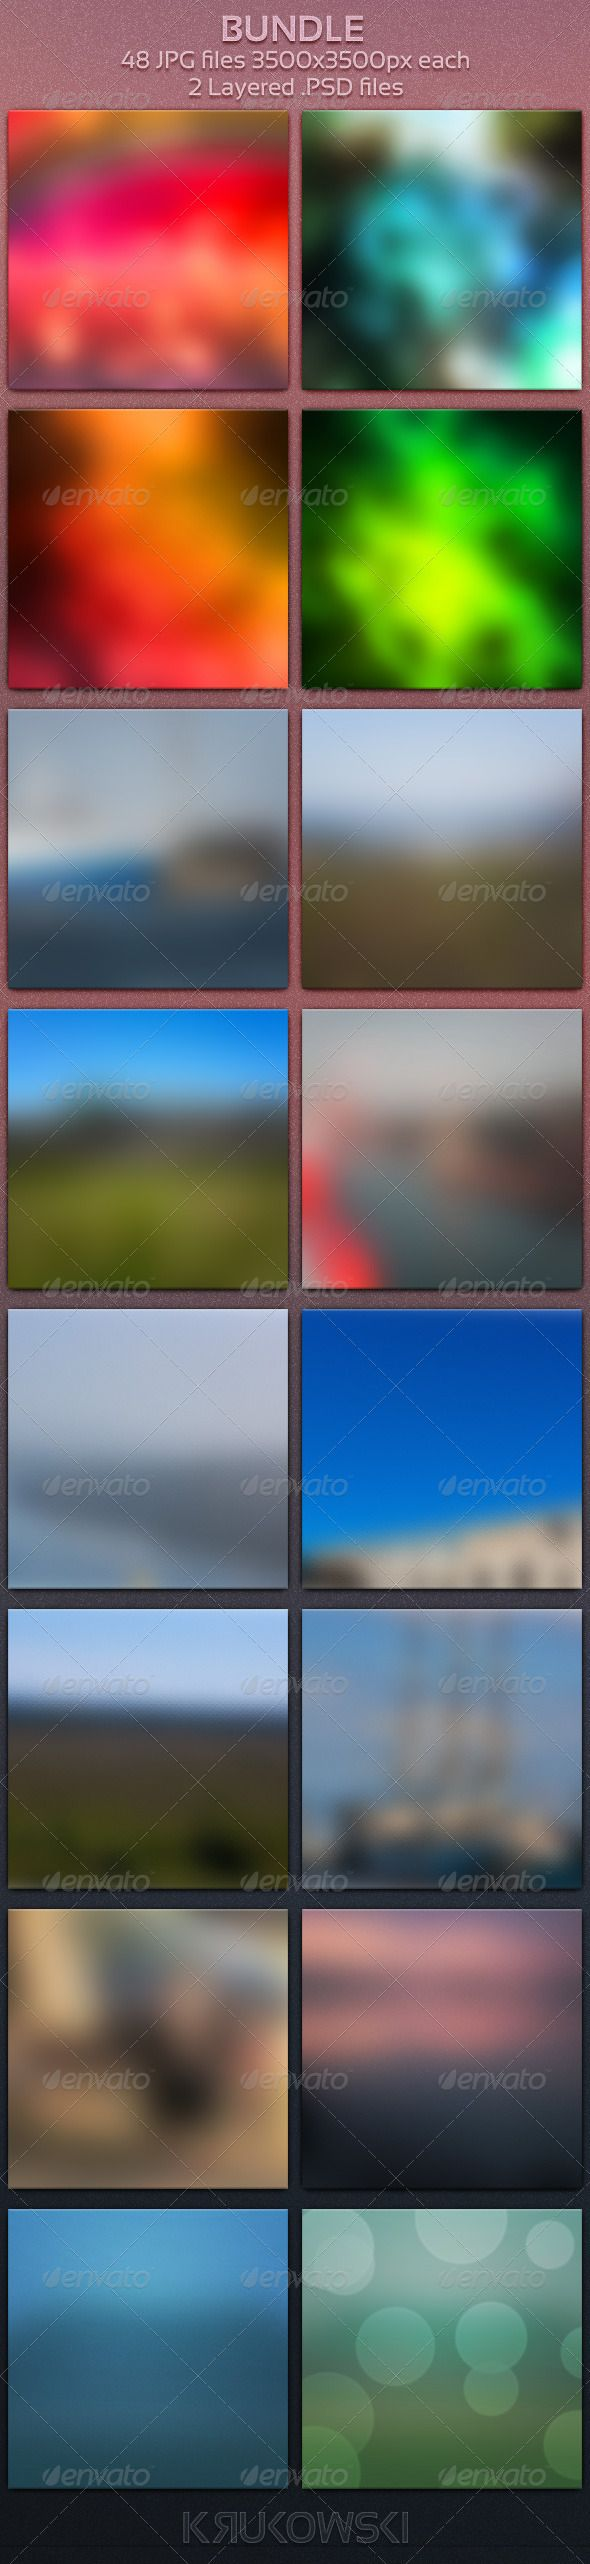 Blur Bundle 48 Blurred Backgrounds  #GraphicRiver        Blur Bundle Great for digital artists, photographers and graphic designers   2 PSD Templates:  Easy to edit layered psd file  48 JPG files 3500×3500px each  Unique design based on my own pictures!   Bundle Contains:   Blurry Backdrop  Glass Blur Background  Blurred Texture  Blurry Backdrop      Created: 20October13 GraphicsFilesIncluded: PhotoshopPSD #JPGImage HighResolution: Yes Layered: Yes MinimumAdobeCSVersion: CS5 PixelDimensions…